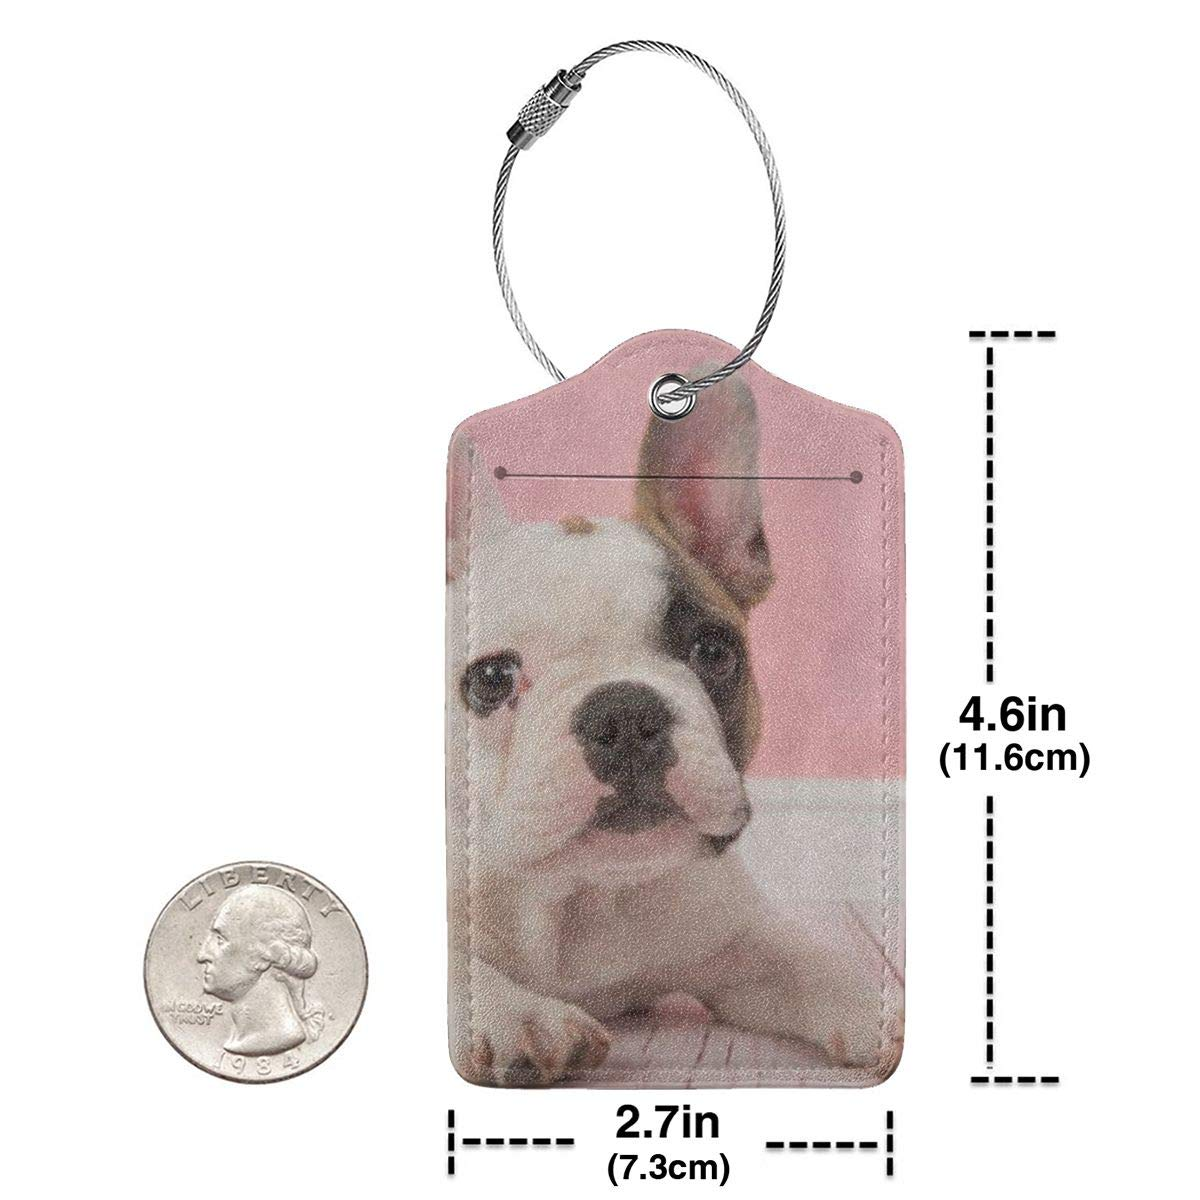 French Bulldog2 Leather Luggage Tags Personalized Address Card With Adjustable Strap